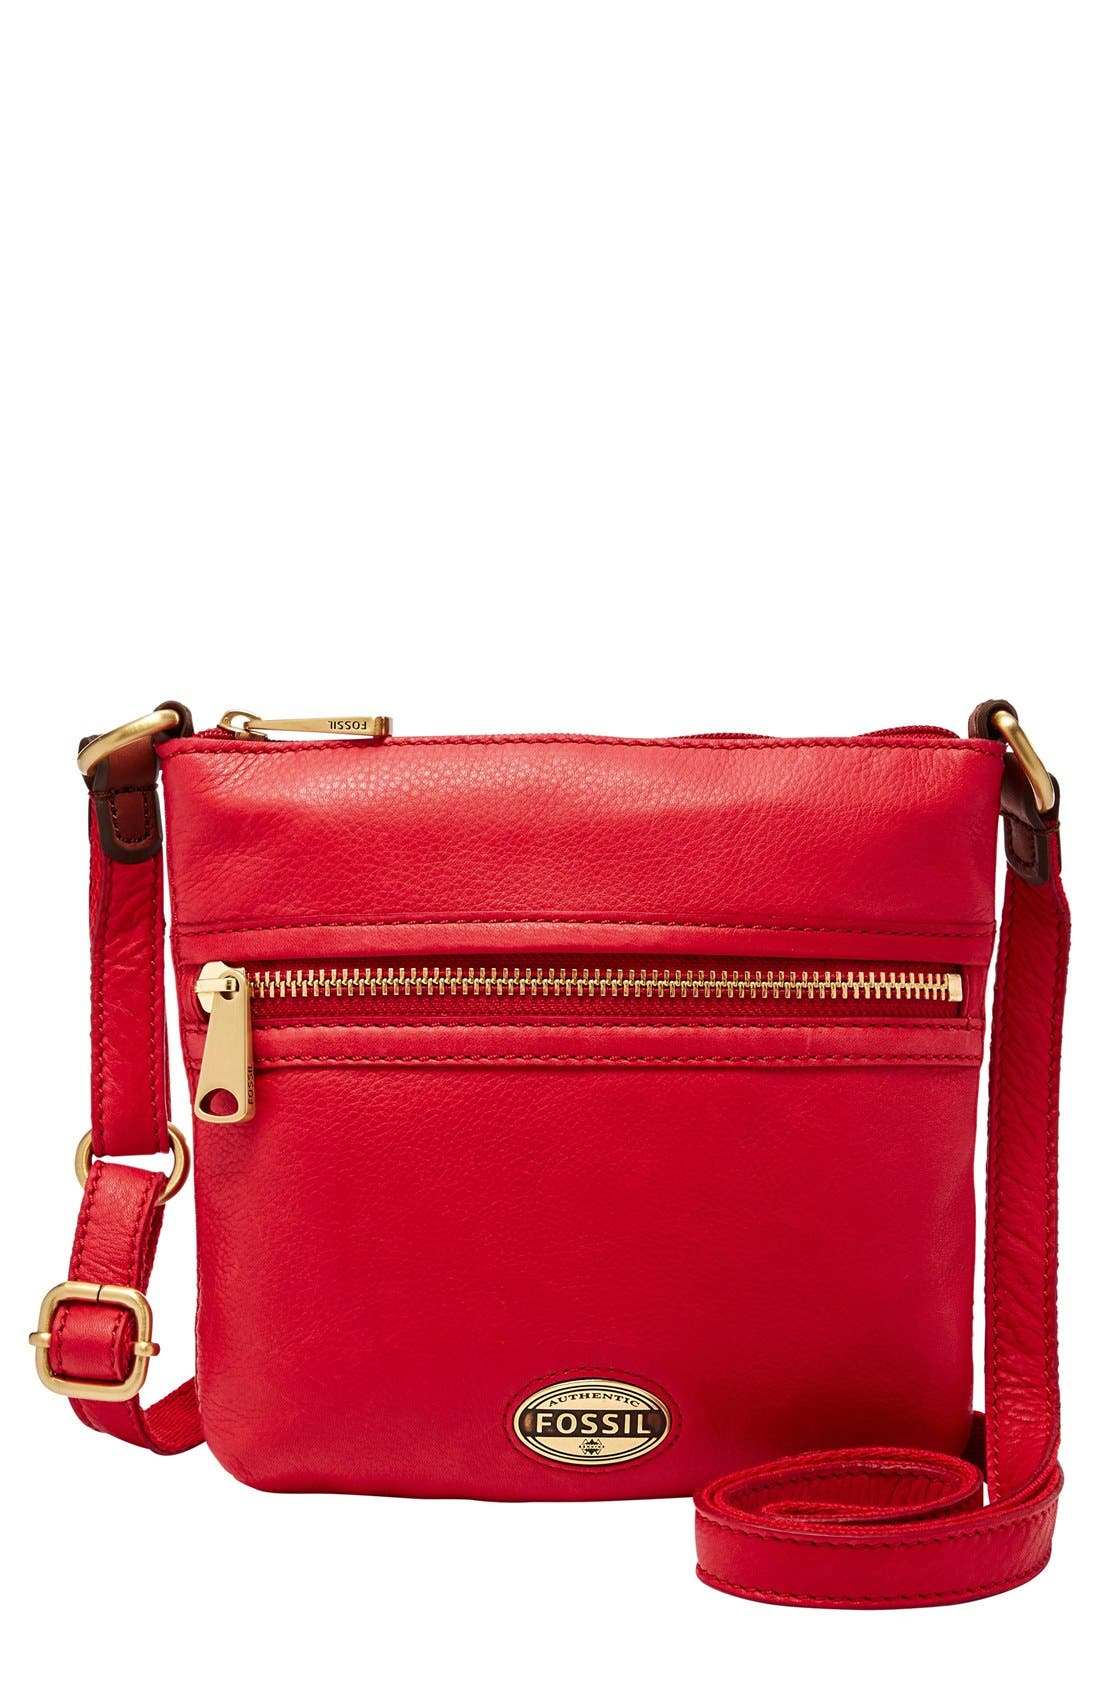 Alternate Image 1 Selected - Fossil 'Explorer - Mini' Crossbody Bag